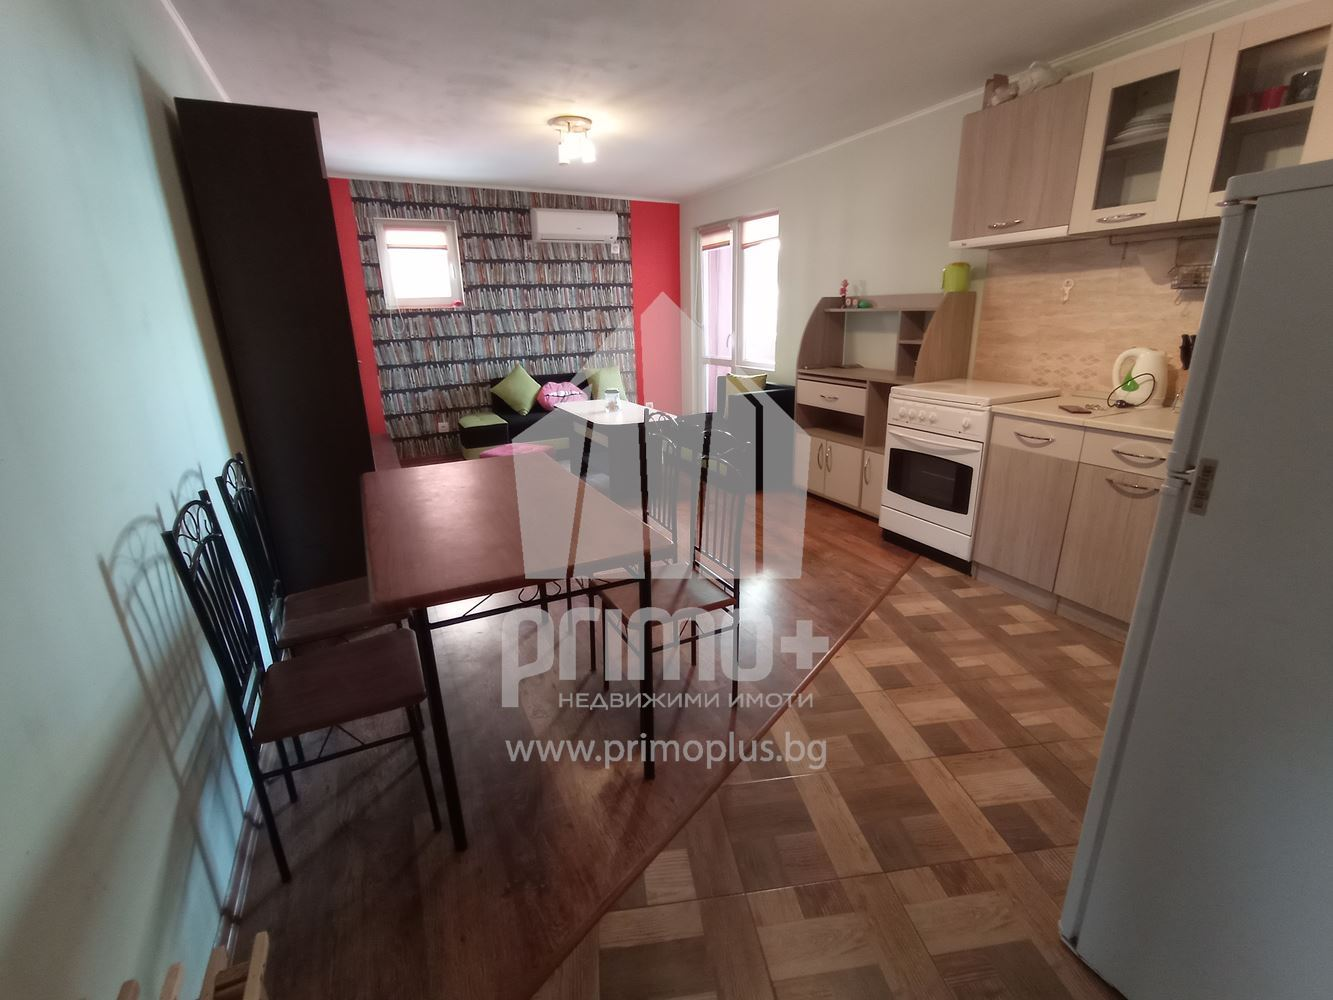 For Rent, 2-bedroom, Vitosha, Sofia, ,For Rent,2